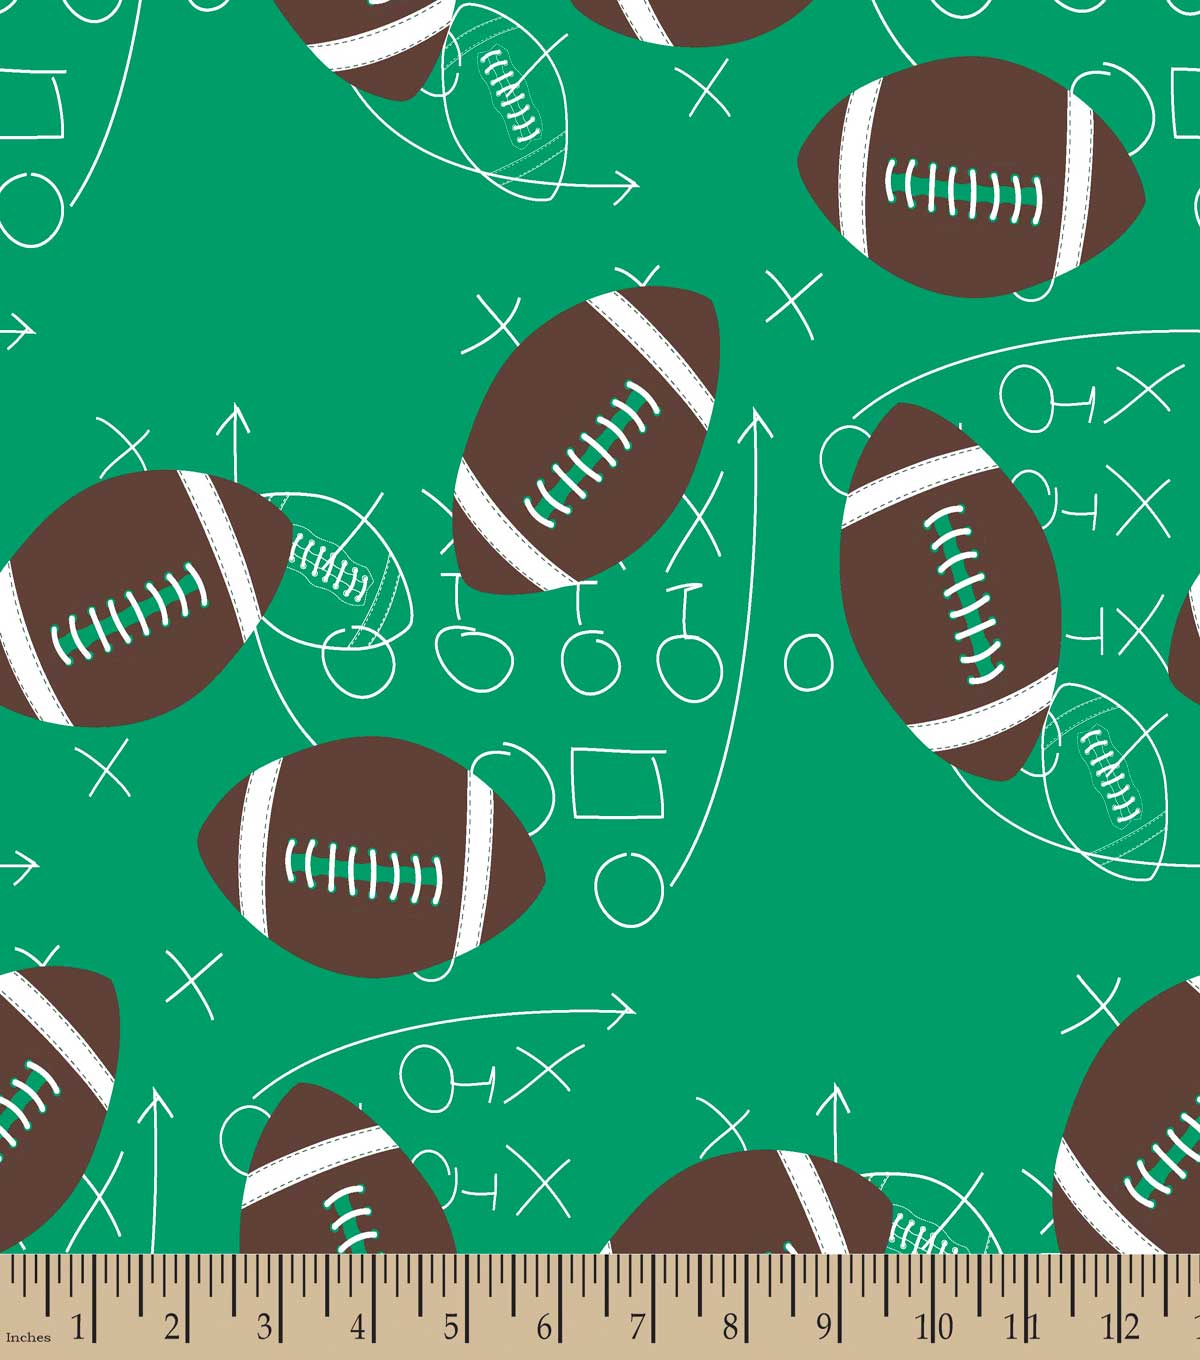 Football Scrimage Print Fabric